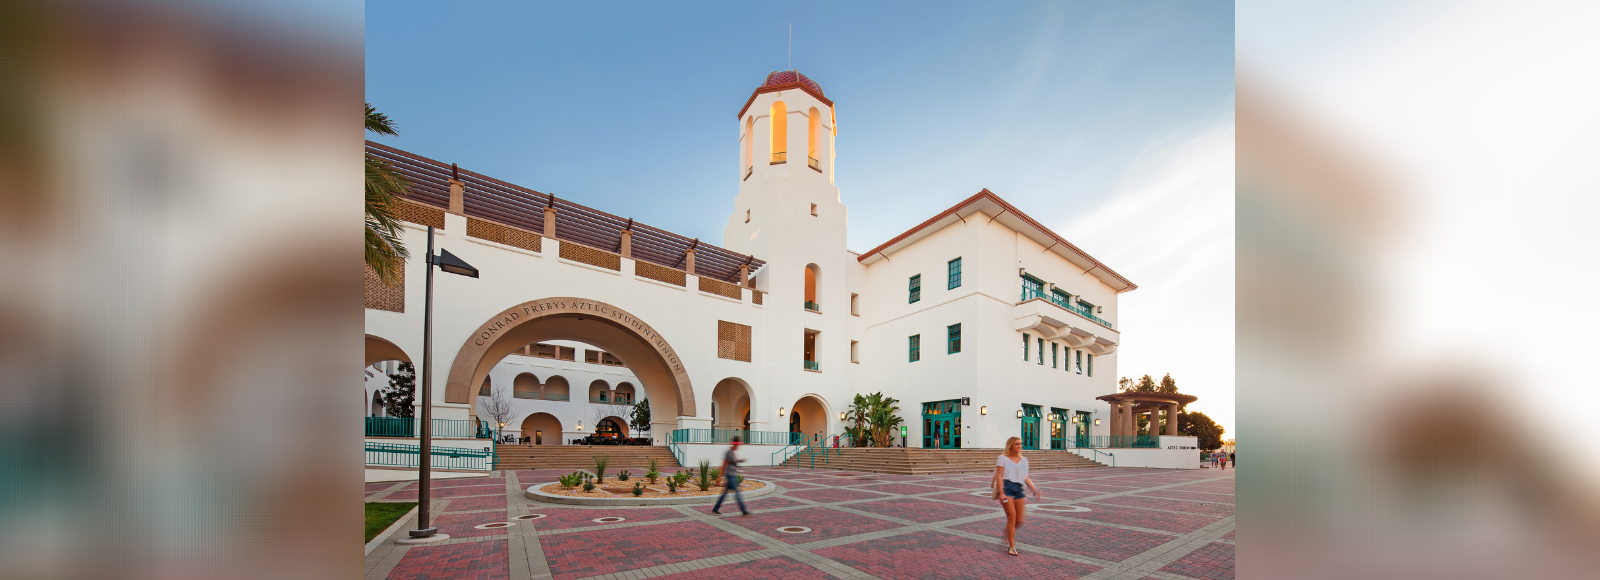 School of Public Affairs' Masters Program Ranked No. 2 by Best Value Schools